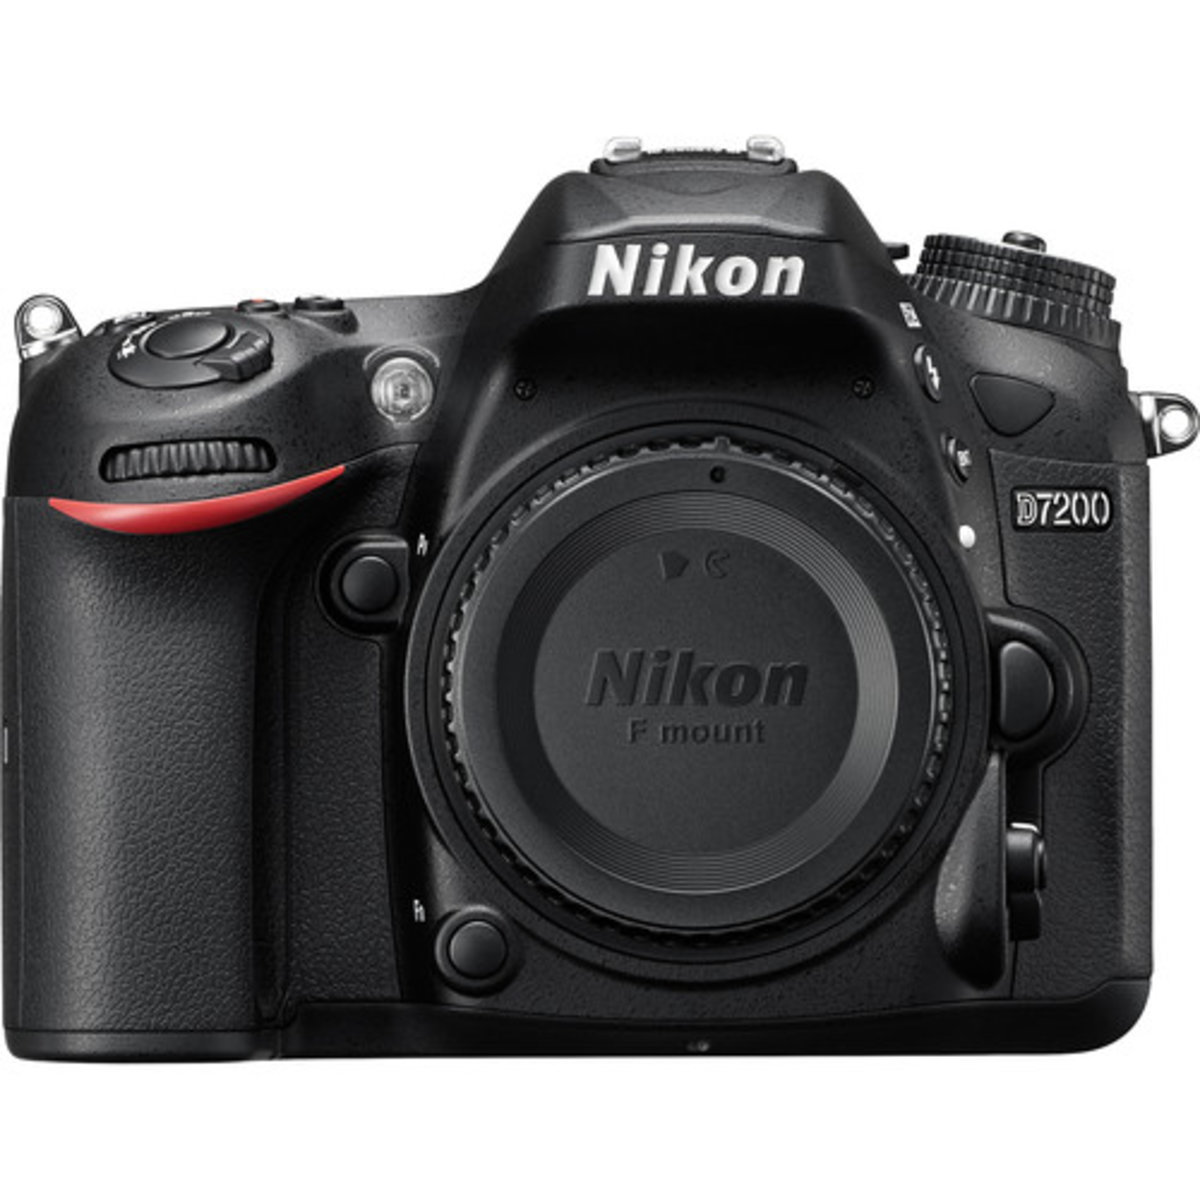 Nikon D7200 DSLR Camera - [Body Only] (Parallel imported)